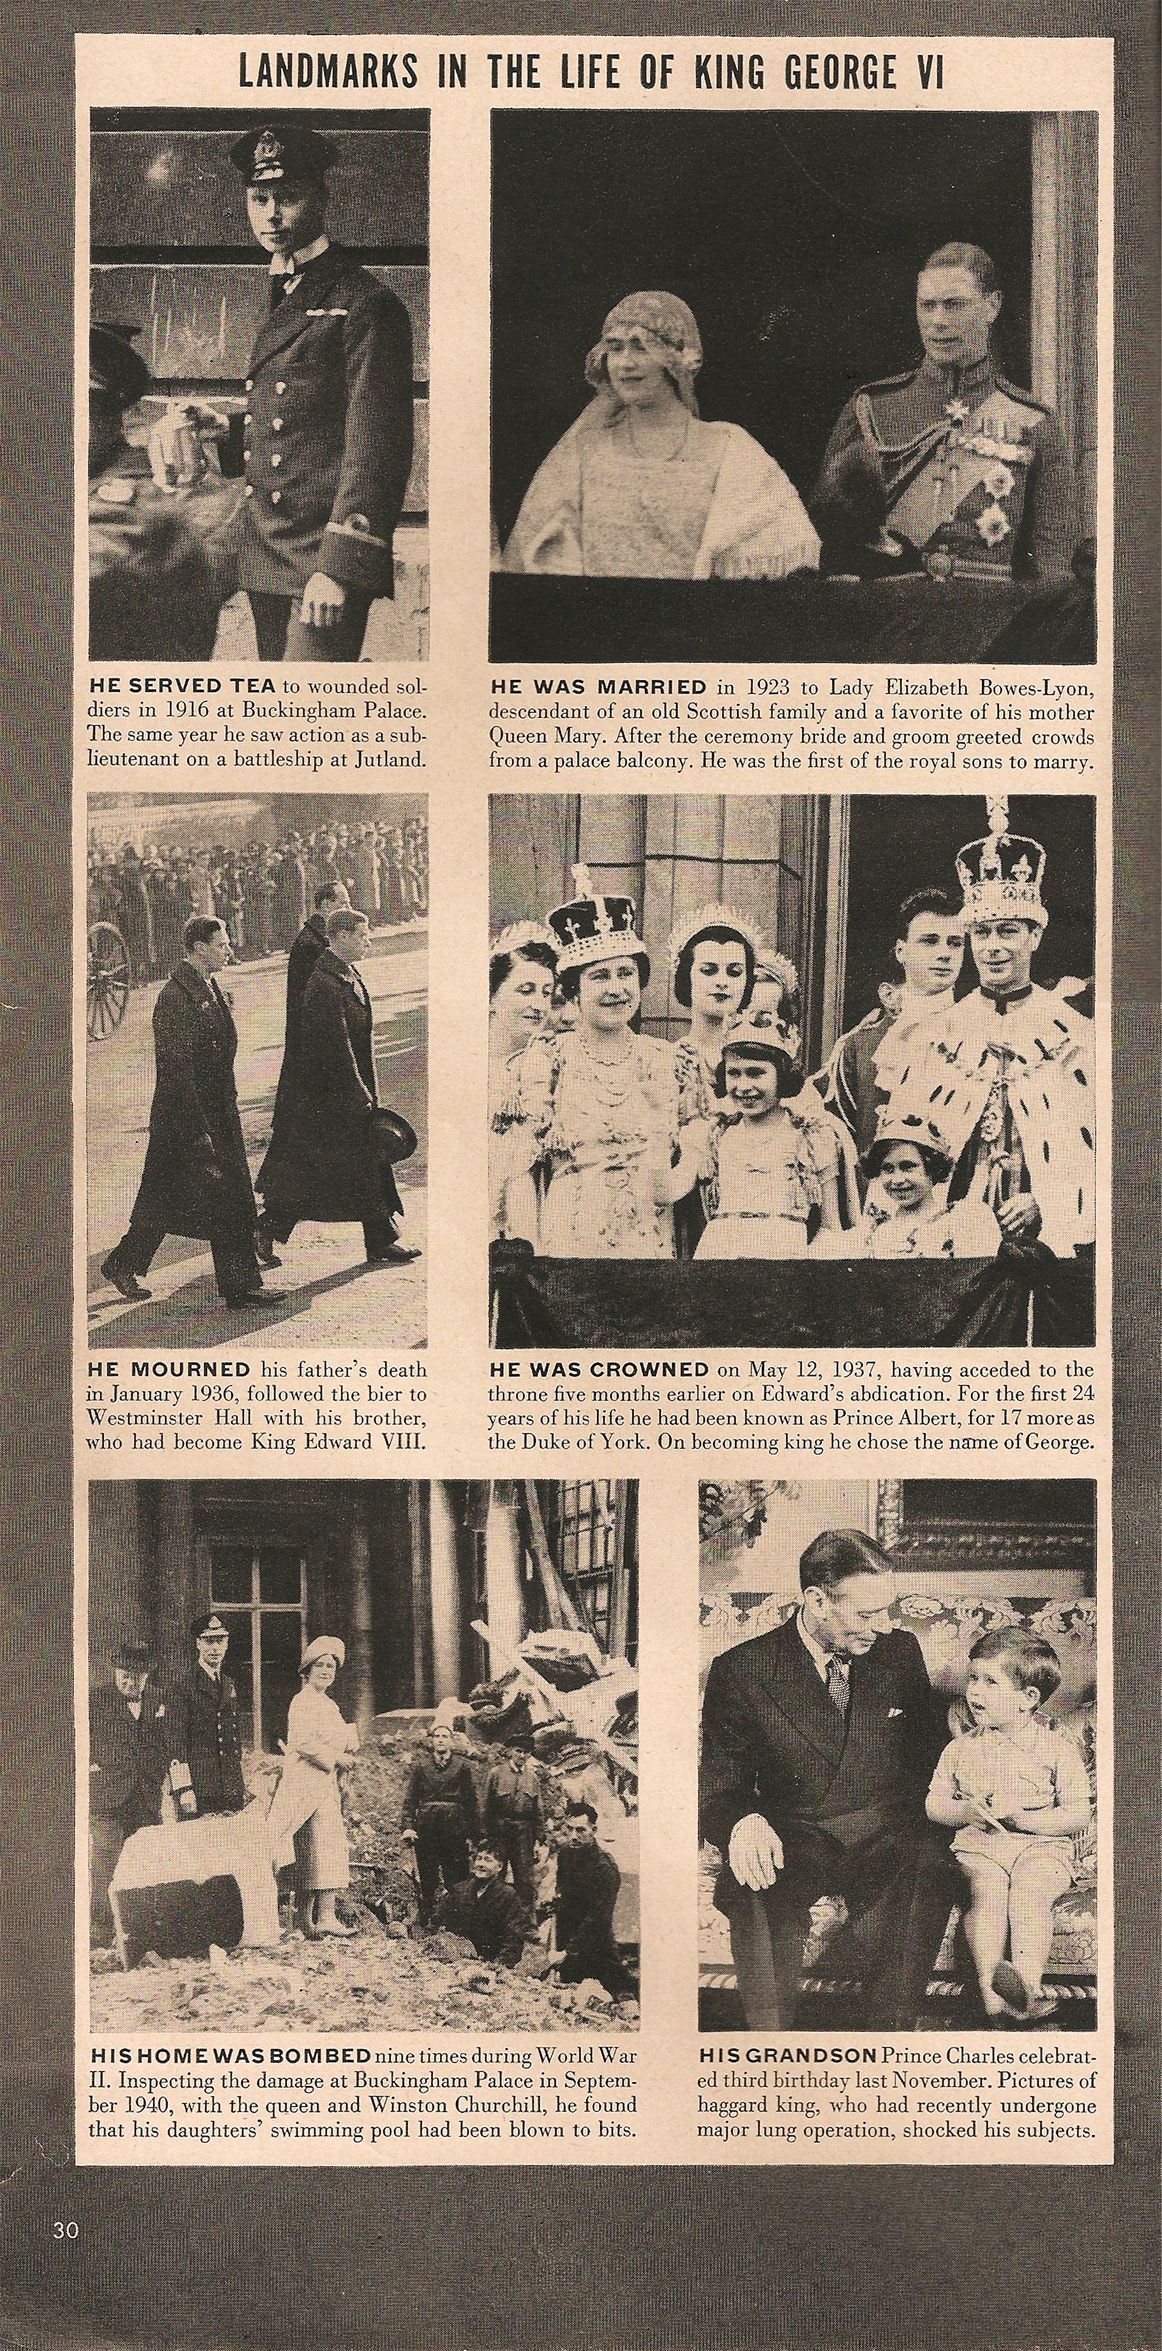 Elizabeth Goes As A Princess Returns As Queen Royal Families Of Europe George Vi British Royalty